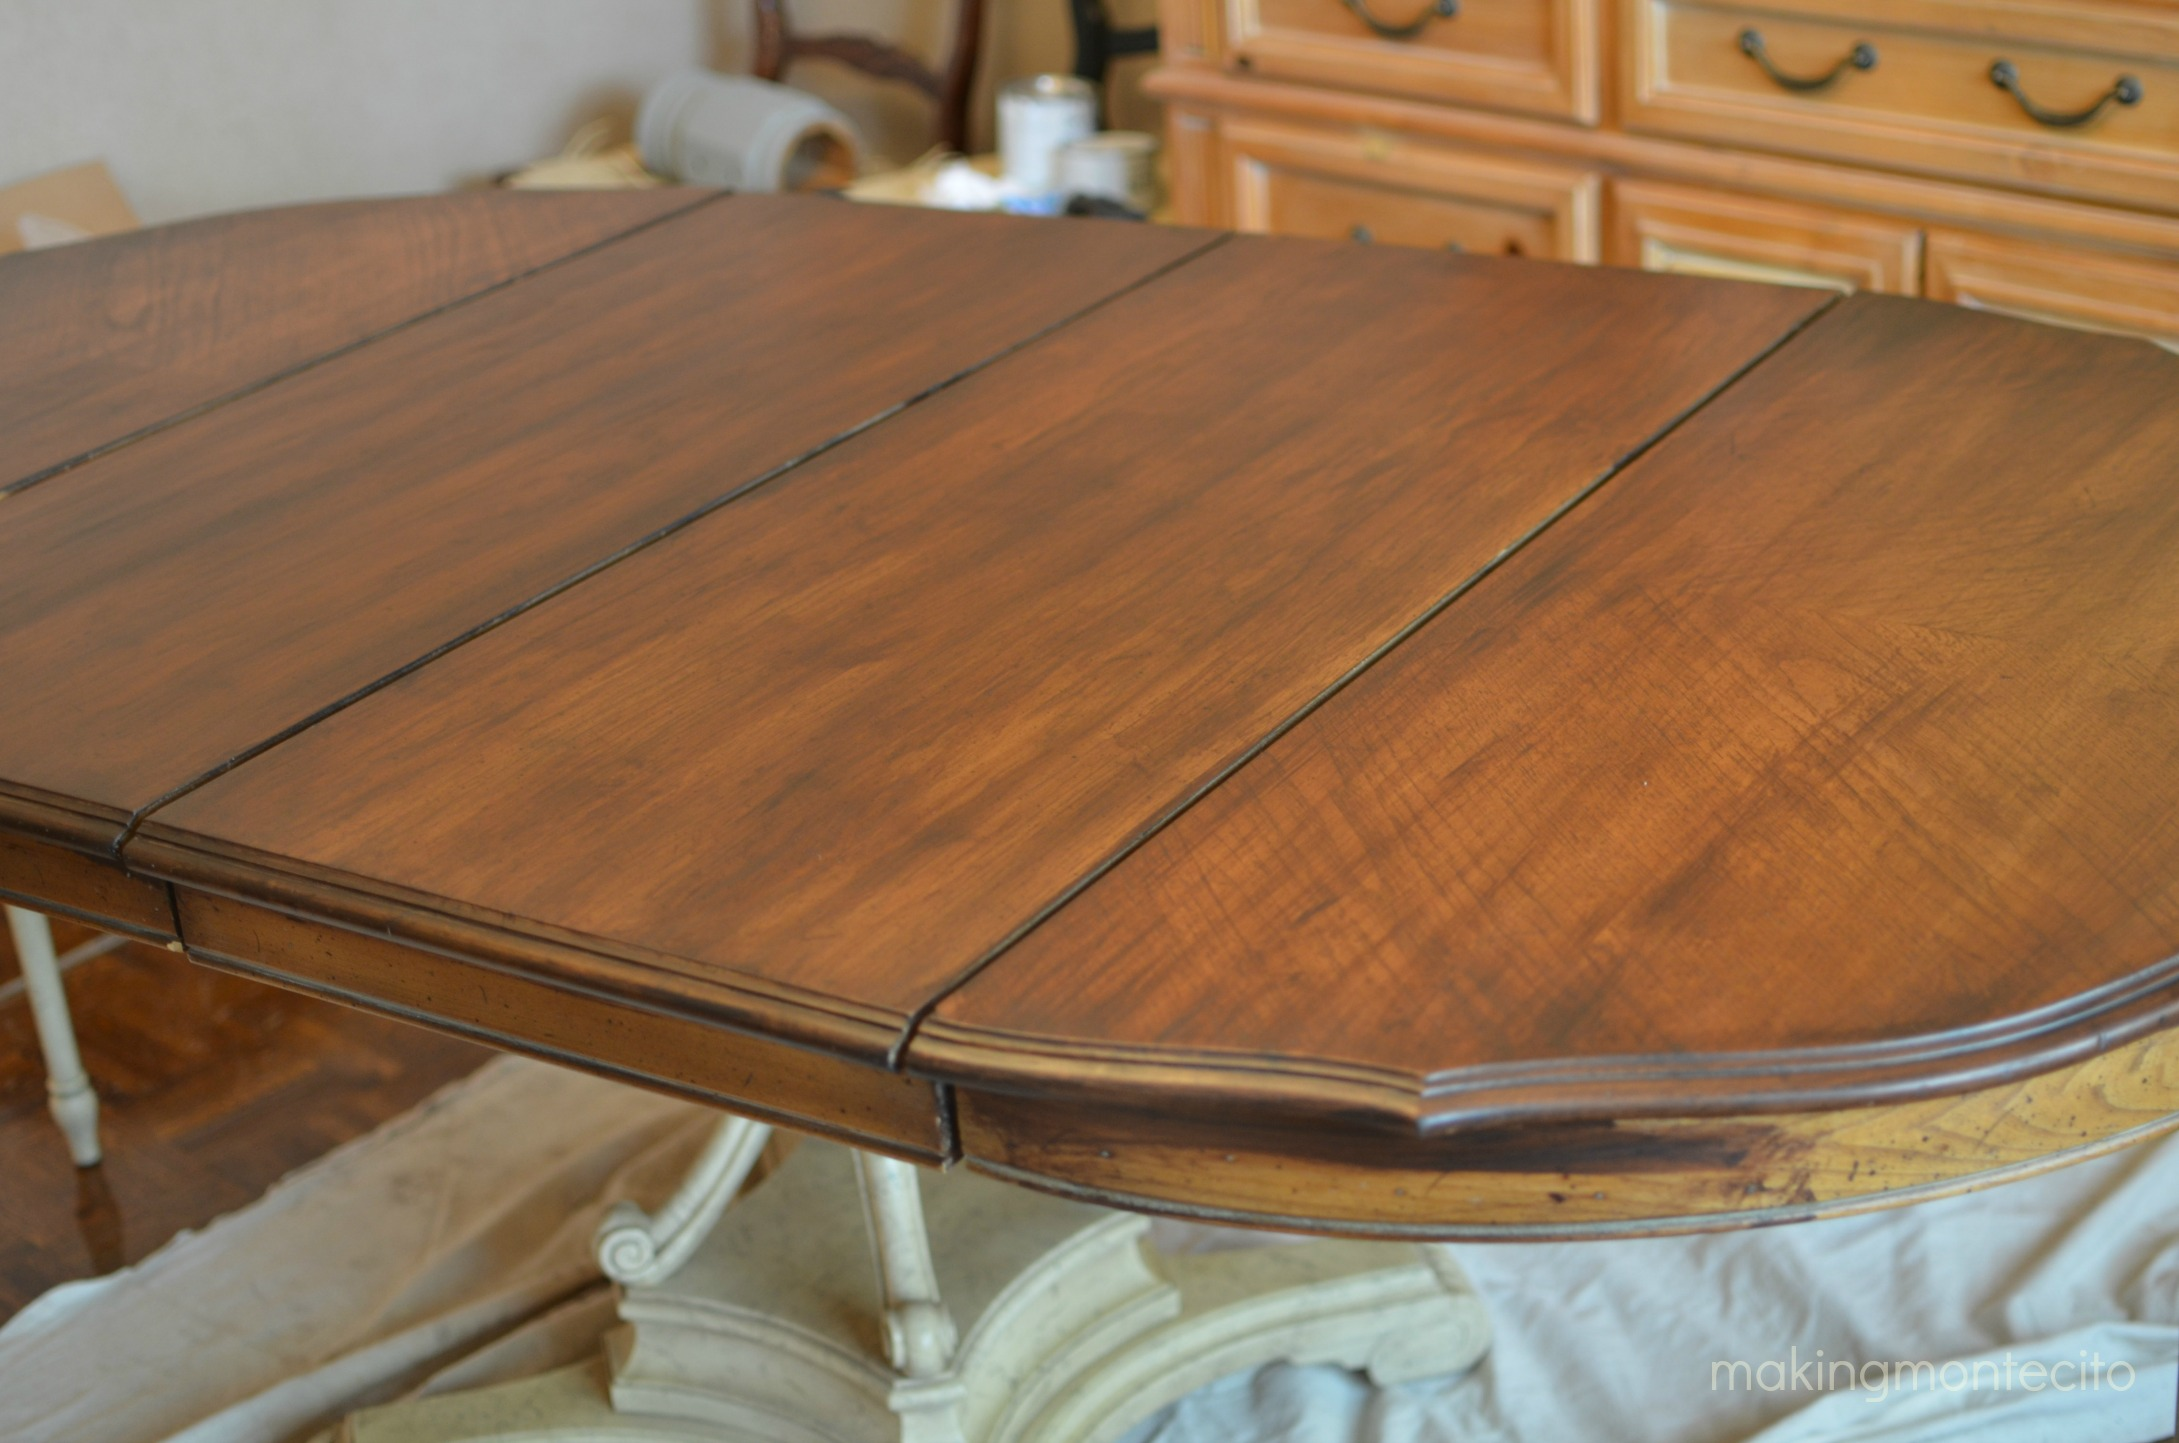 Vintage dining table updated - making montecito 3